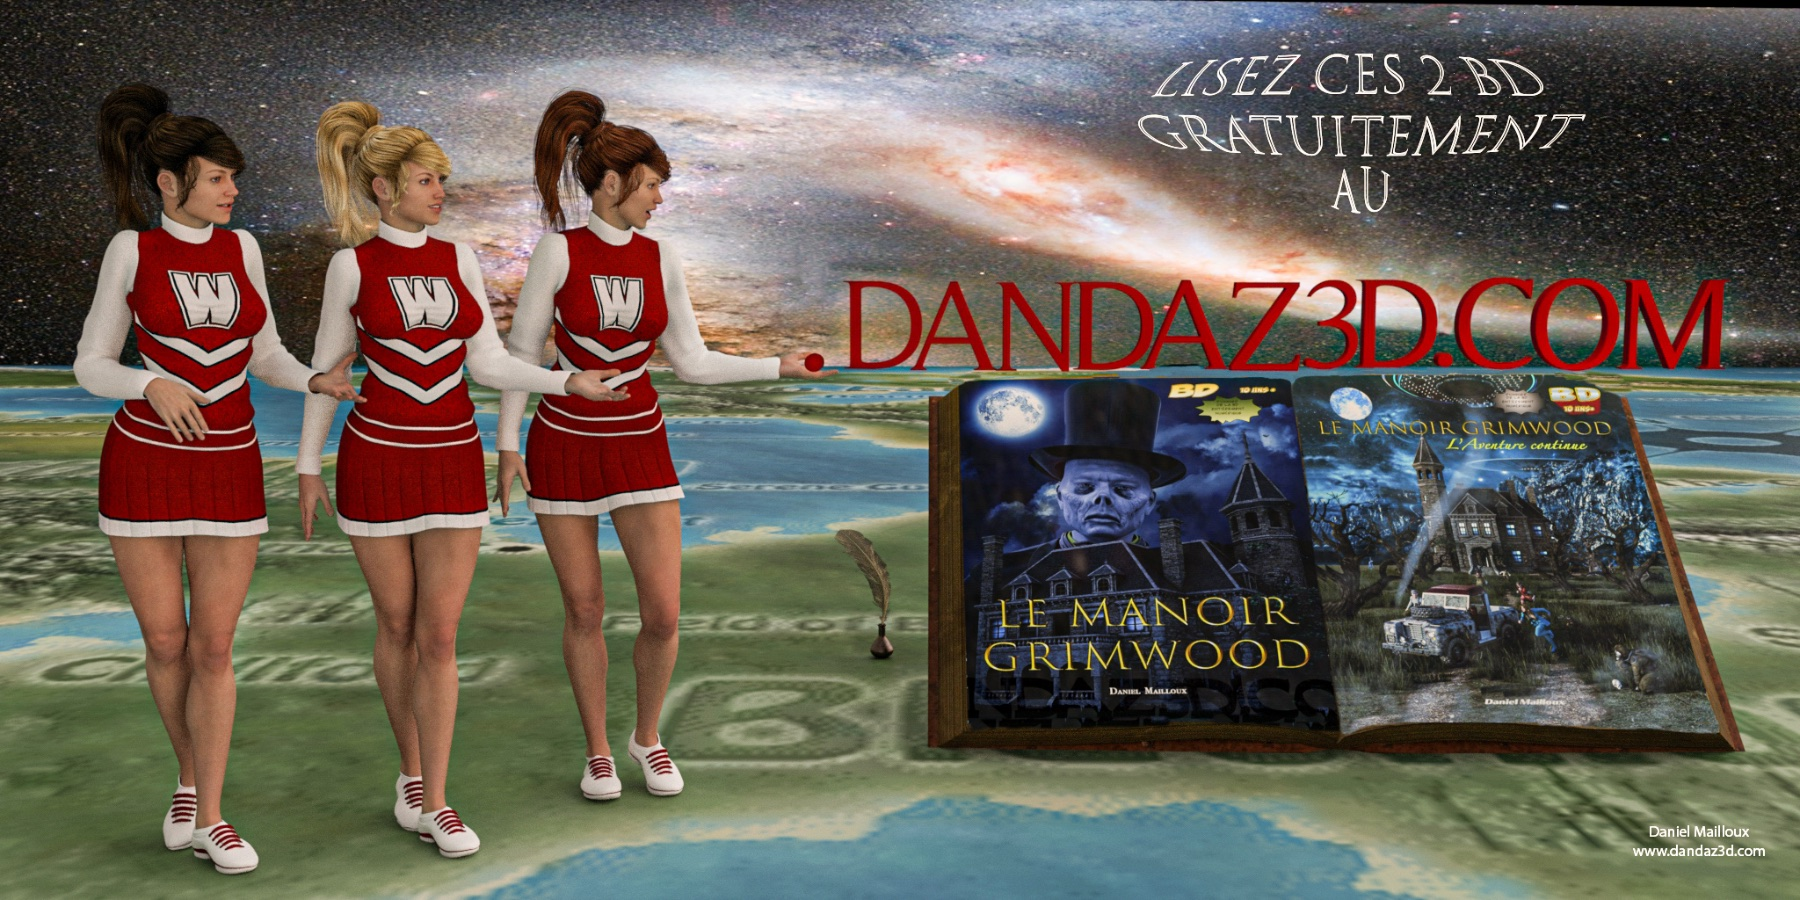 www cheeleaders at www.dandaz3d.com